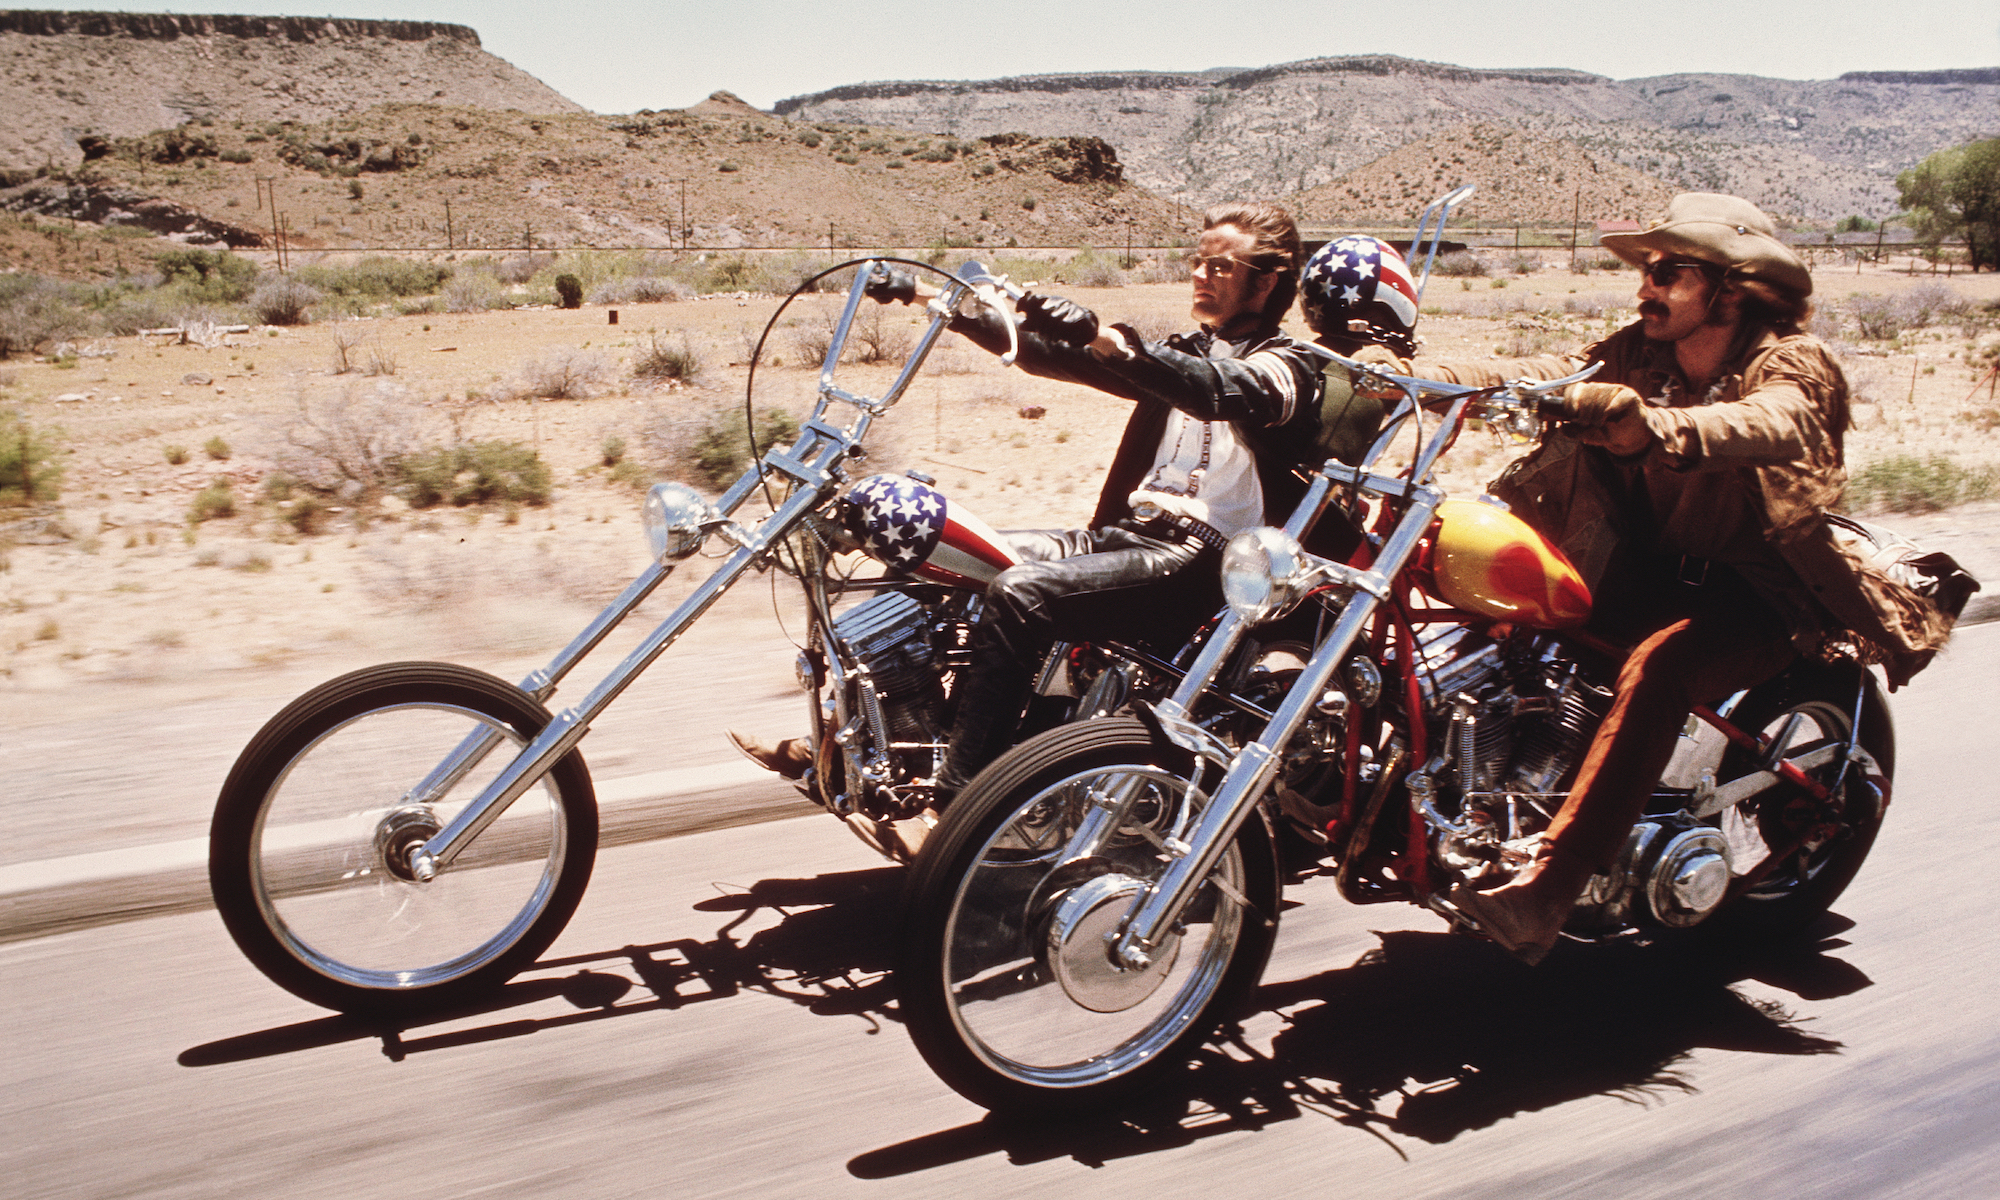 Peter Fonda and Denis Hopper in Easy Rider, a 420-friendly flick on Hollywood Suite